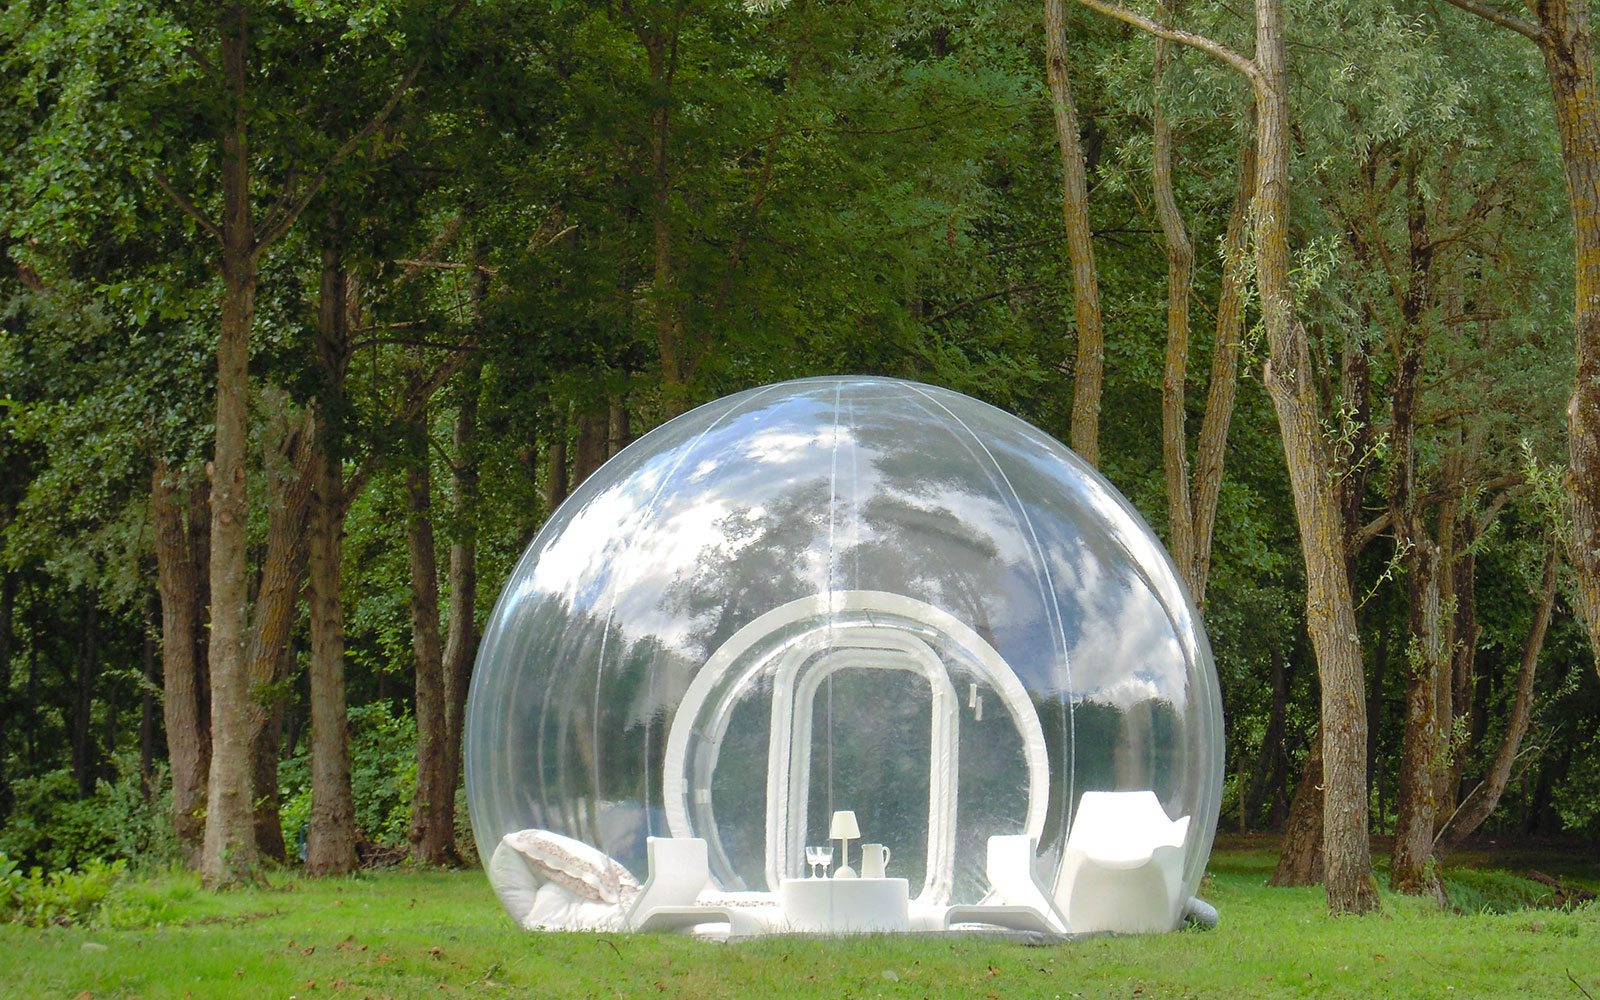 201203-w-unusual-hotels-bubble-tree